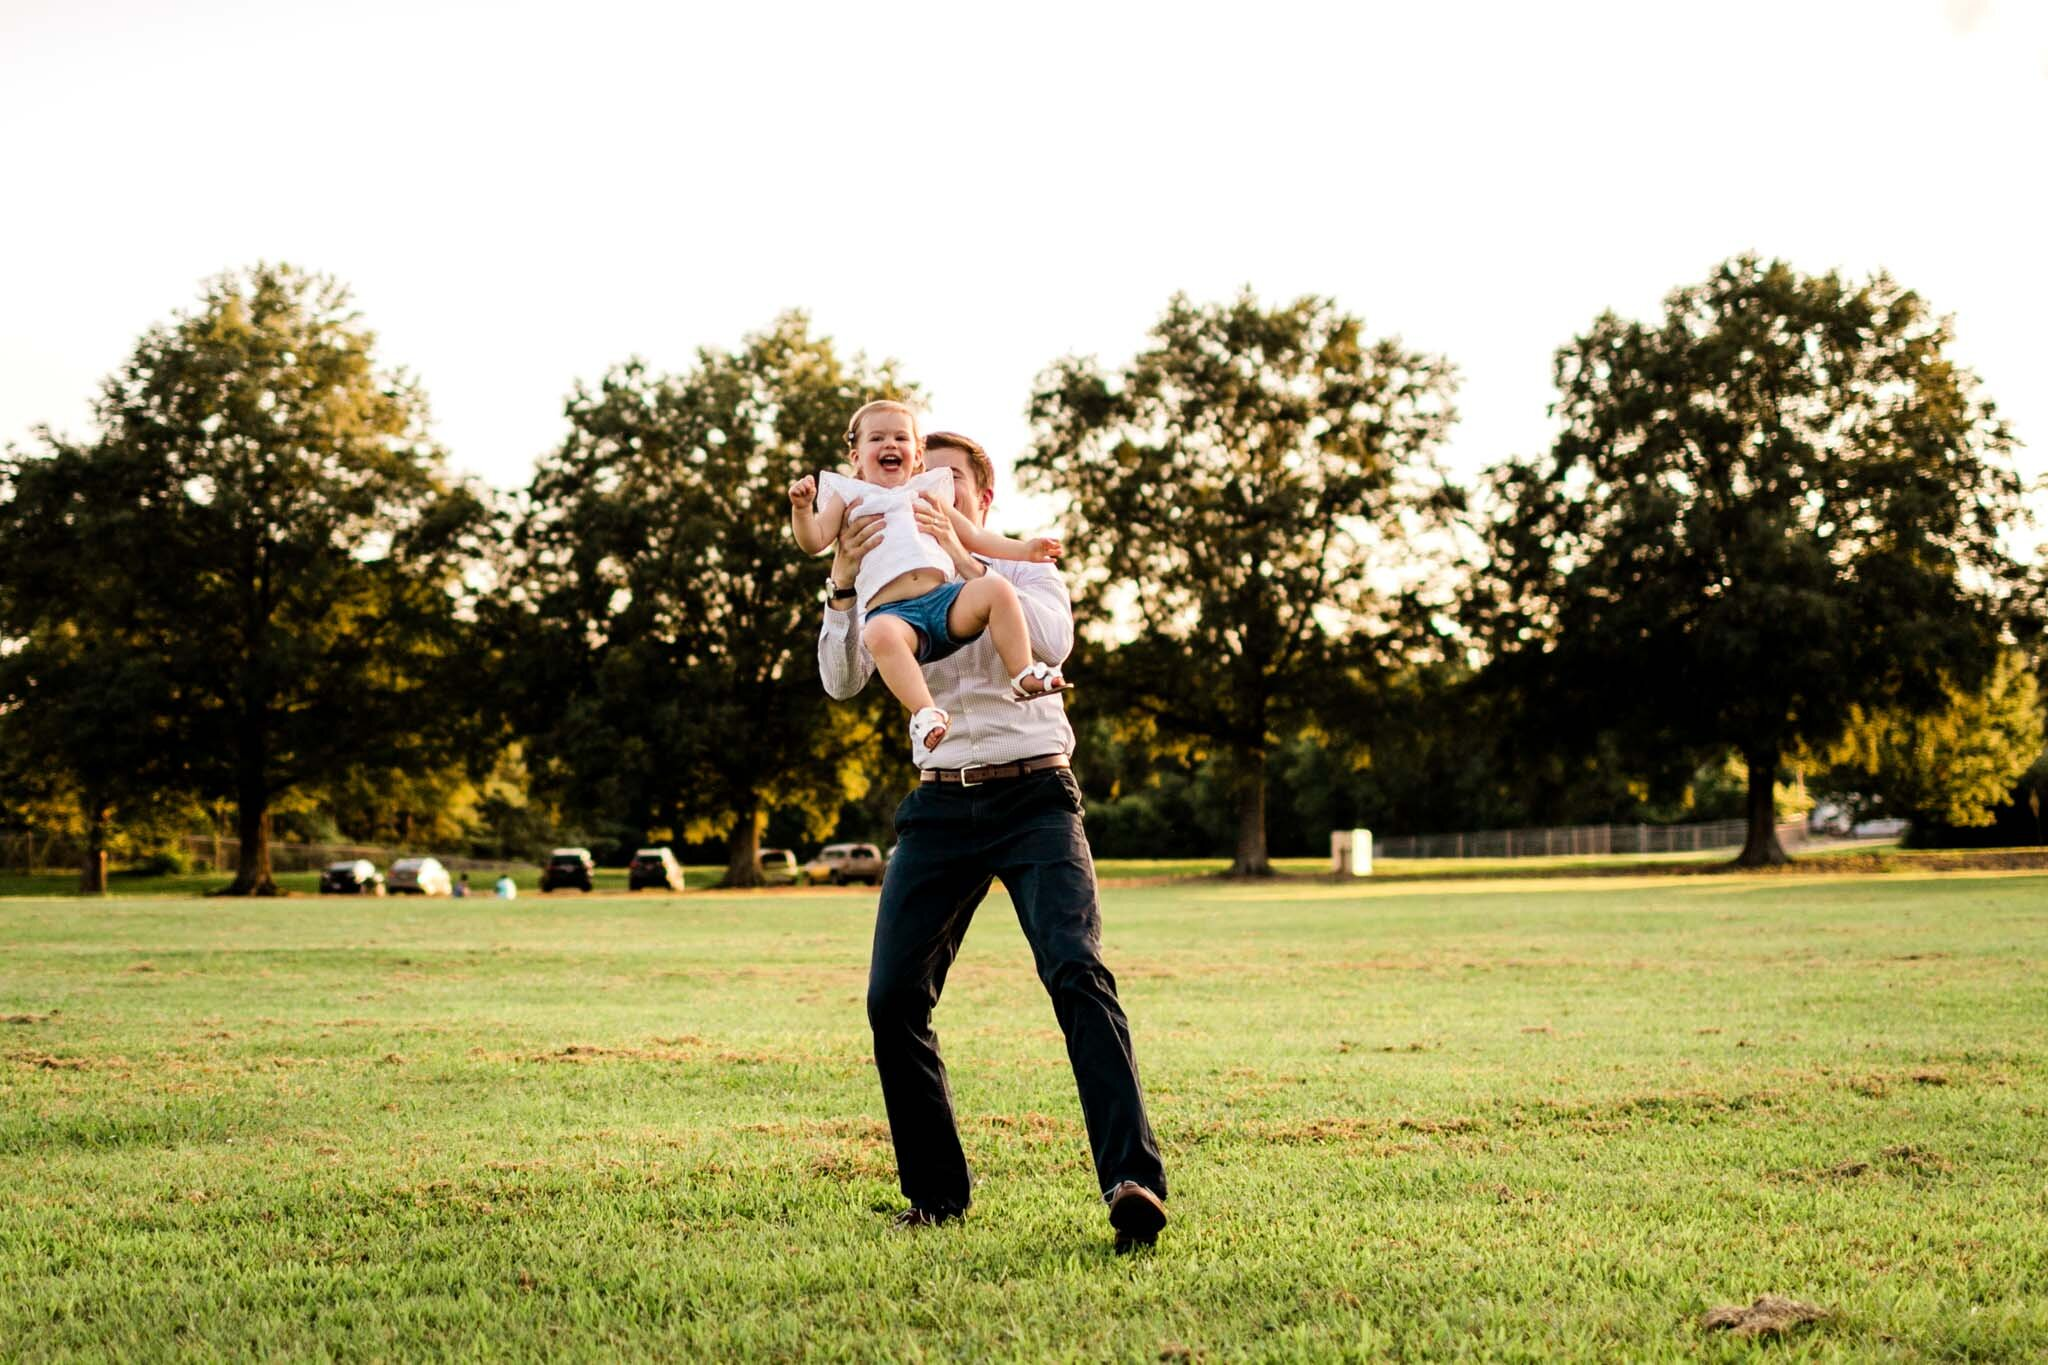 Raleigh Family Photography at Dix Park | By G. Lin Photography | Dad throwing daughter in the air